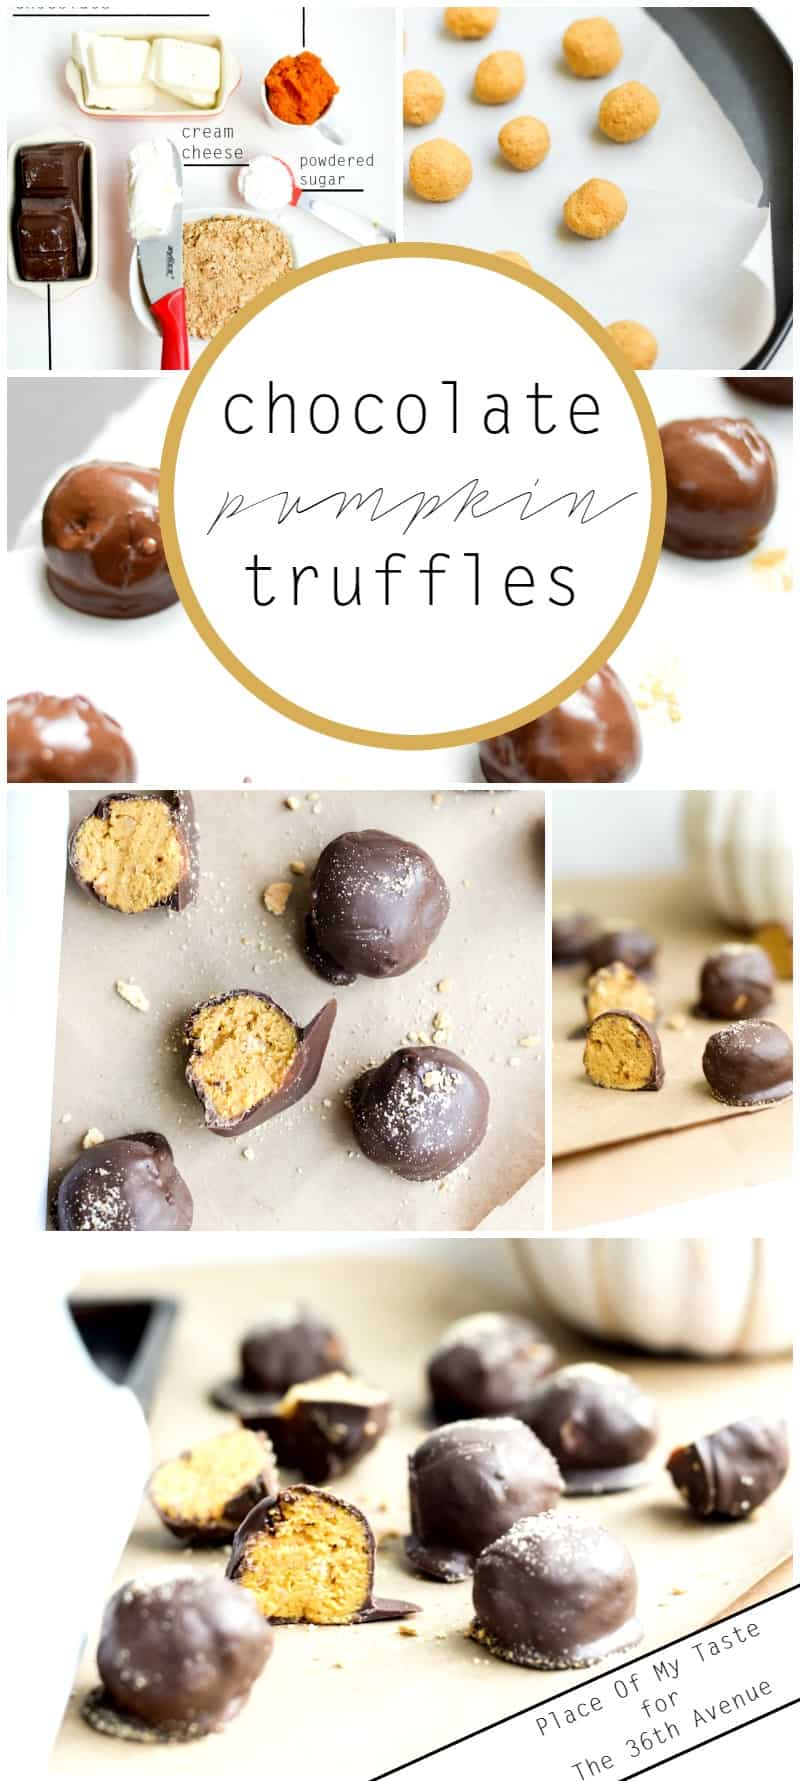 Chocolate Pumpkin Truffles - Place Of My Taste for The 36th Avenue